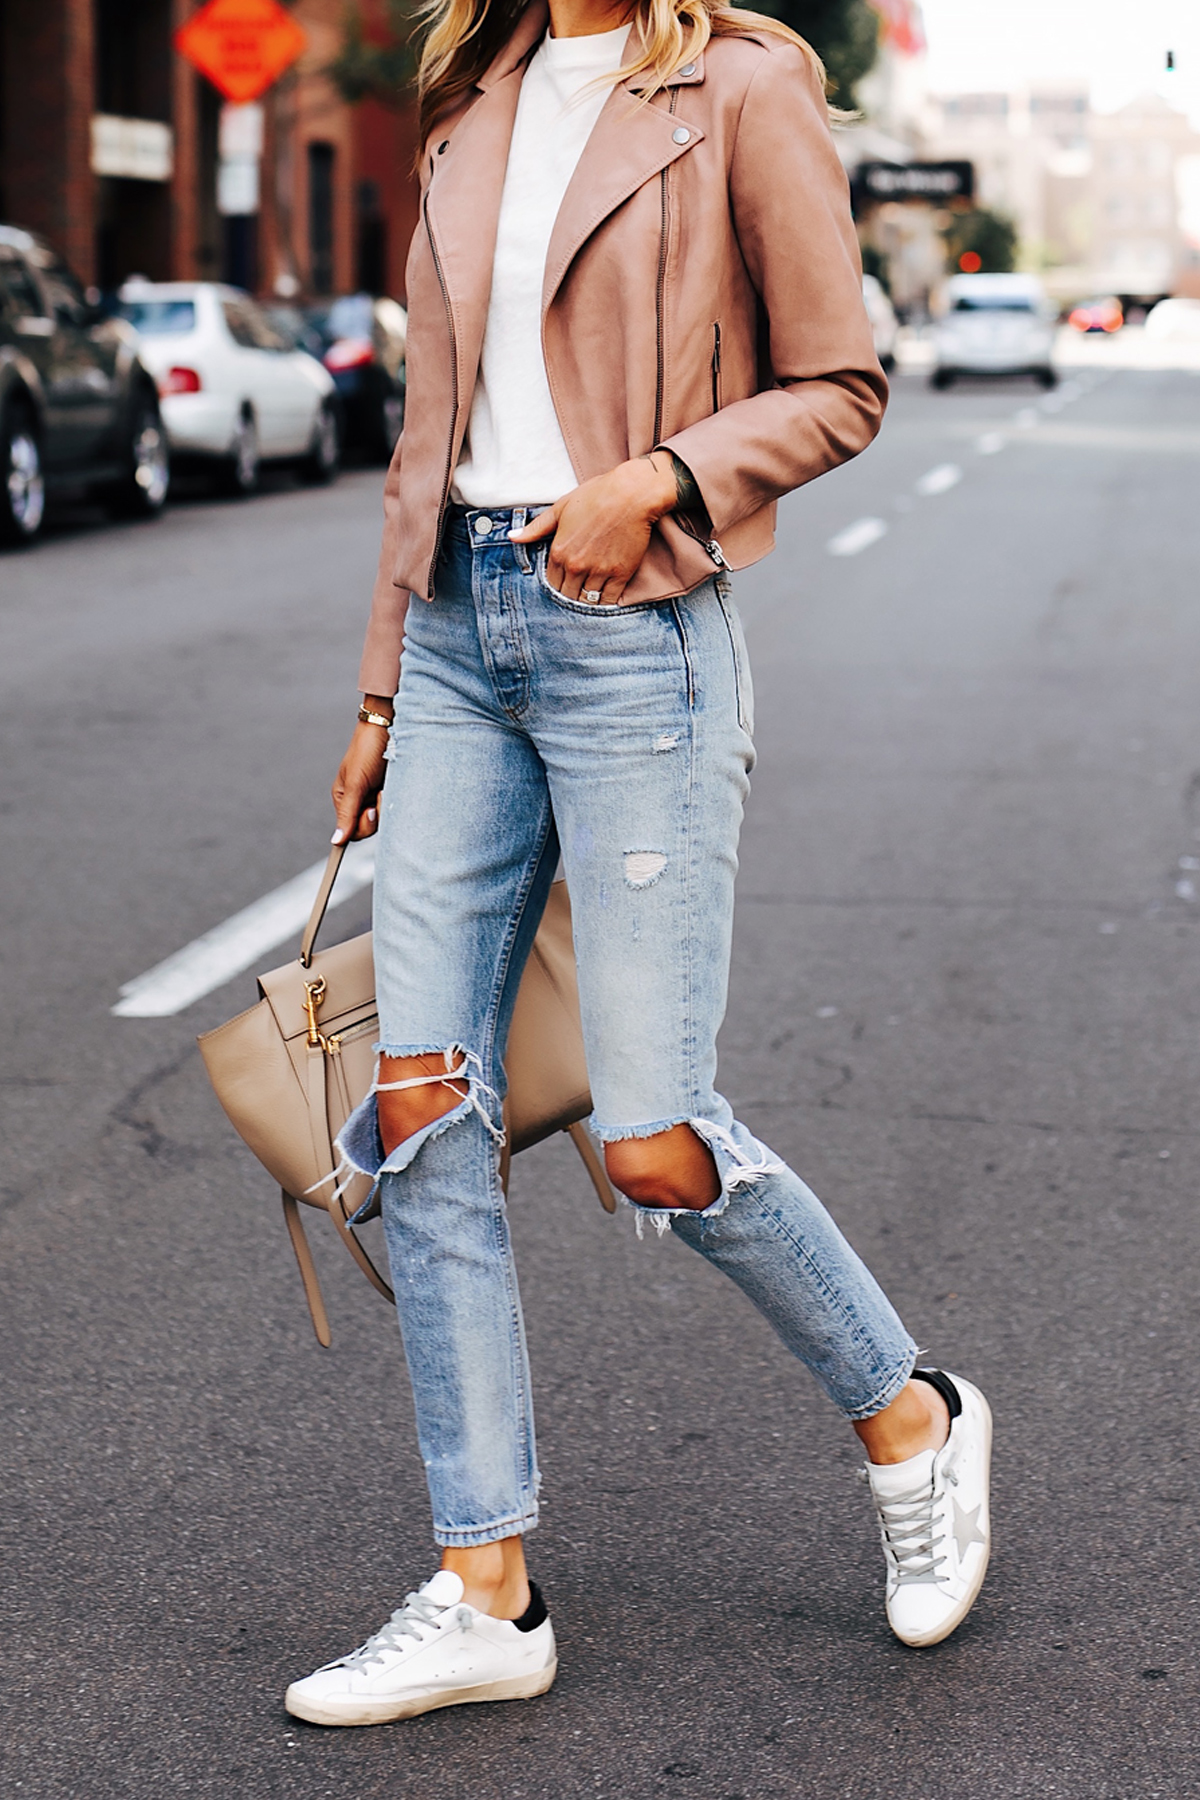 Woman Wearing Blush Faux Leather Jacket Boyish The Billie Jean Easy Rider Golden Goose Sneakers Fashion Jackson San Diego Fashion Blogger Street Style